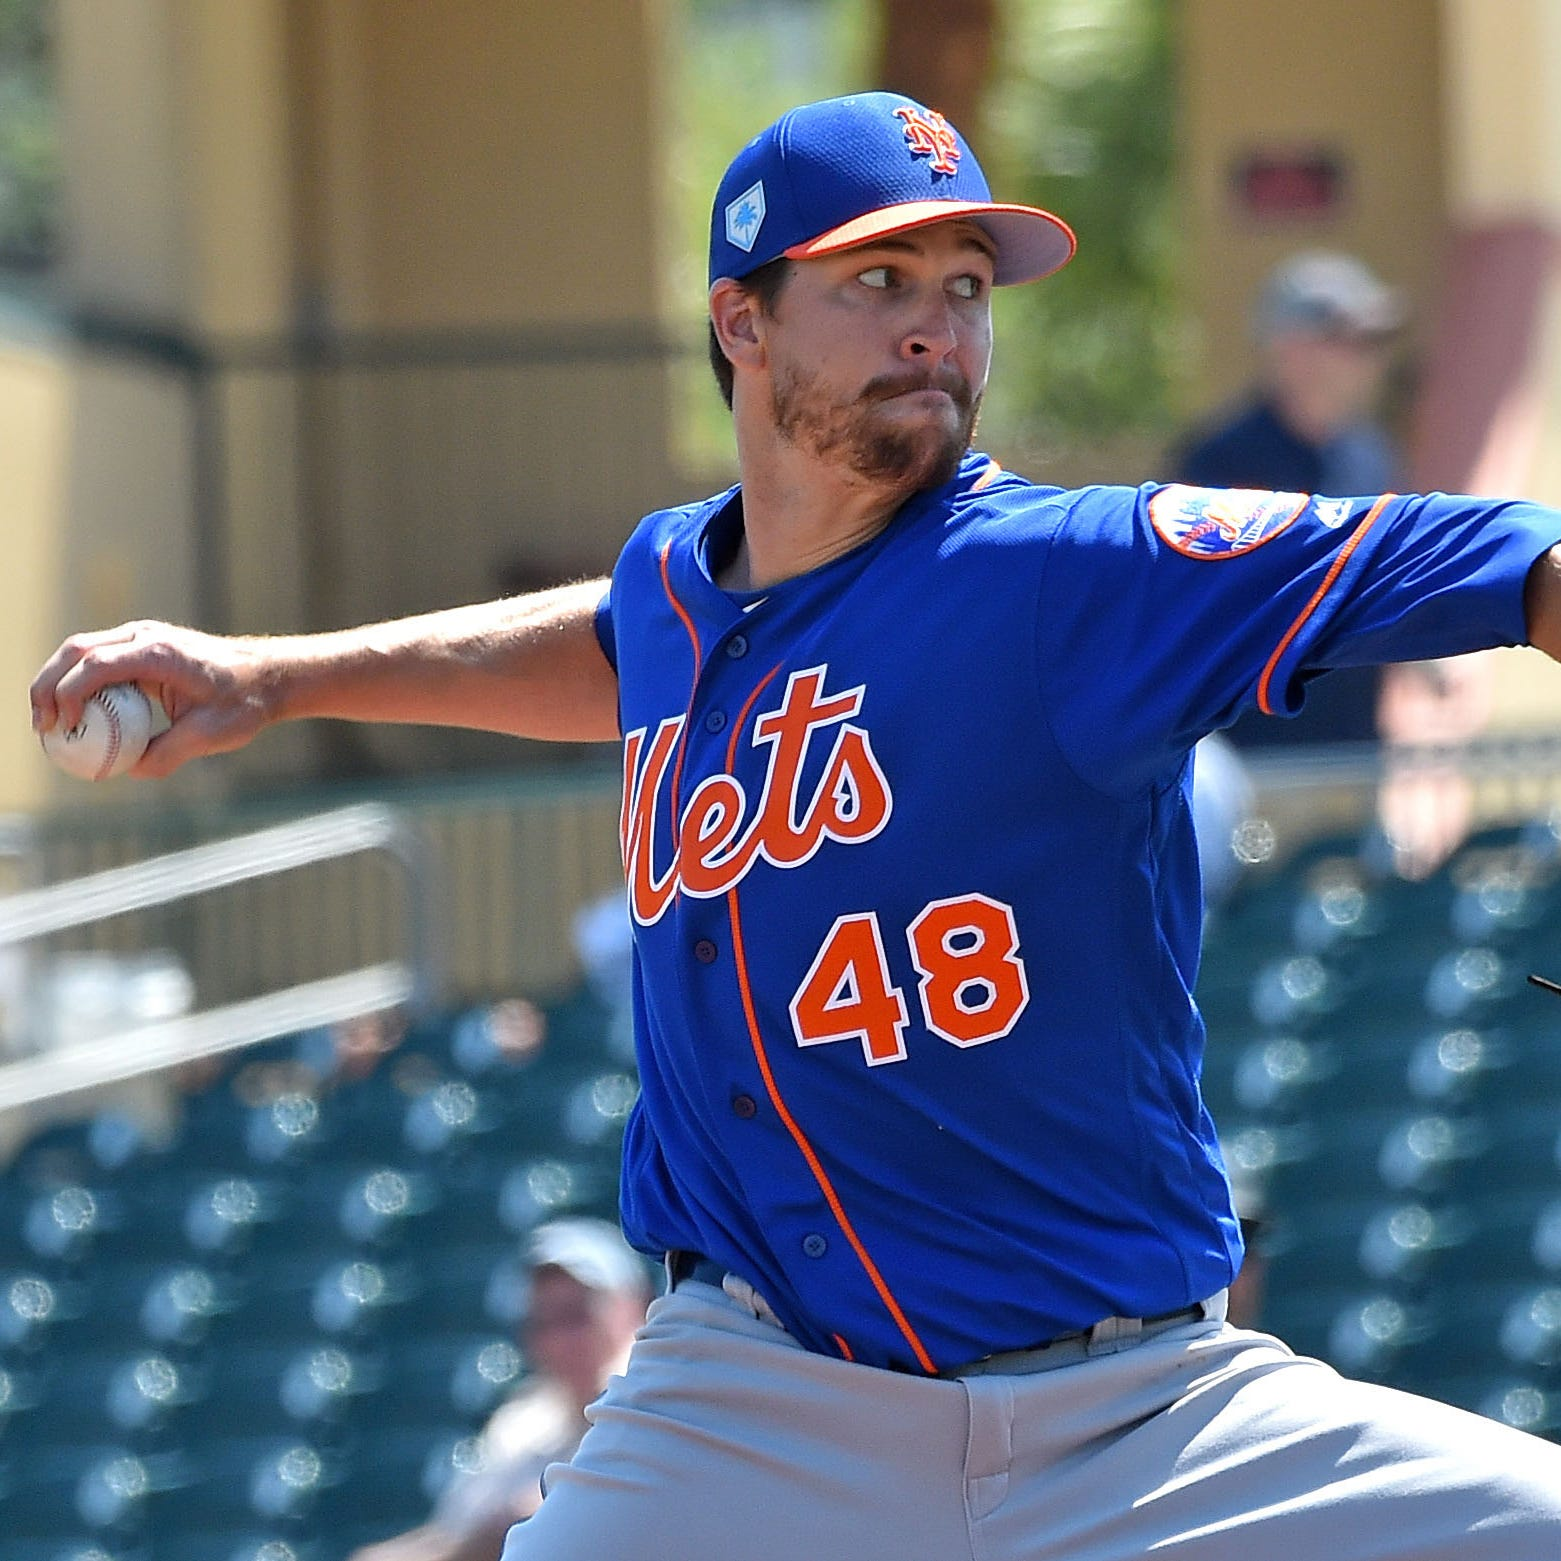 March 21: New York Mets spring training schedule